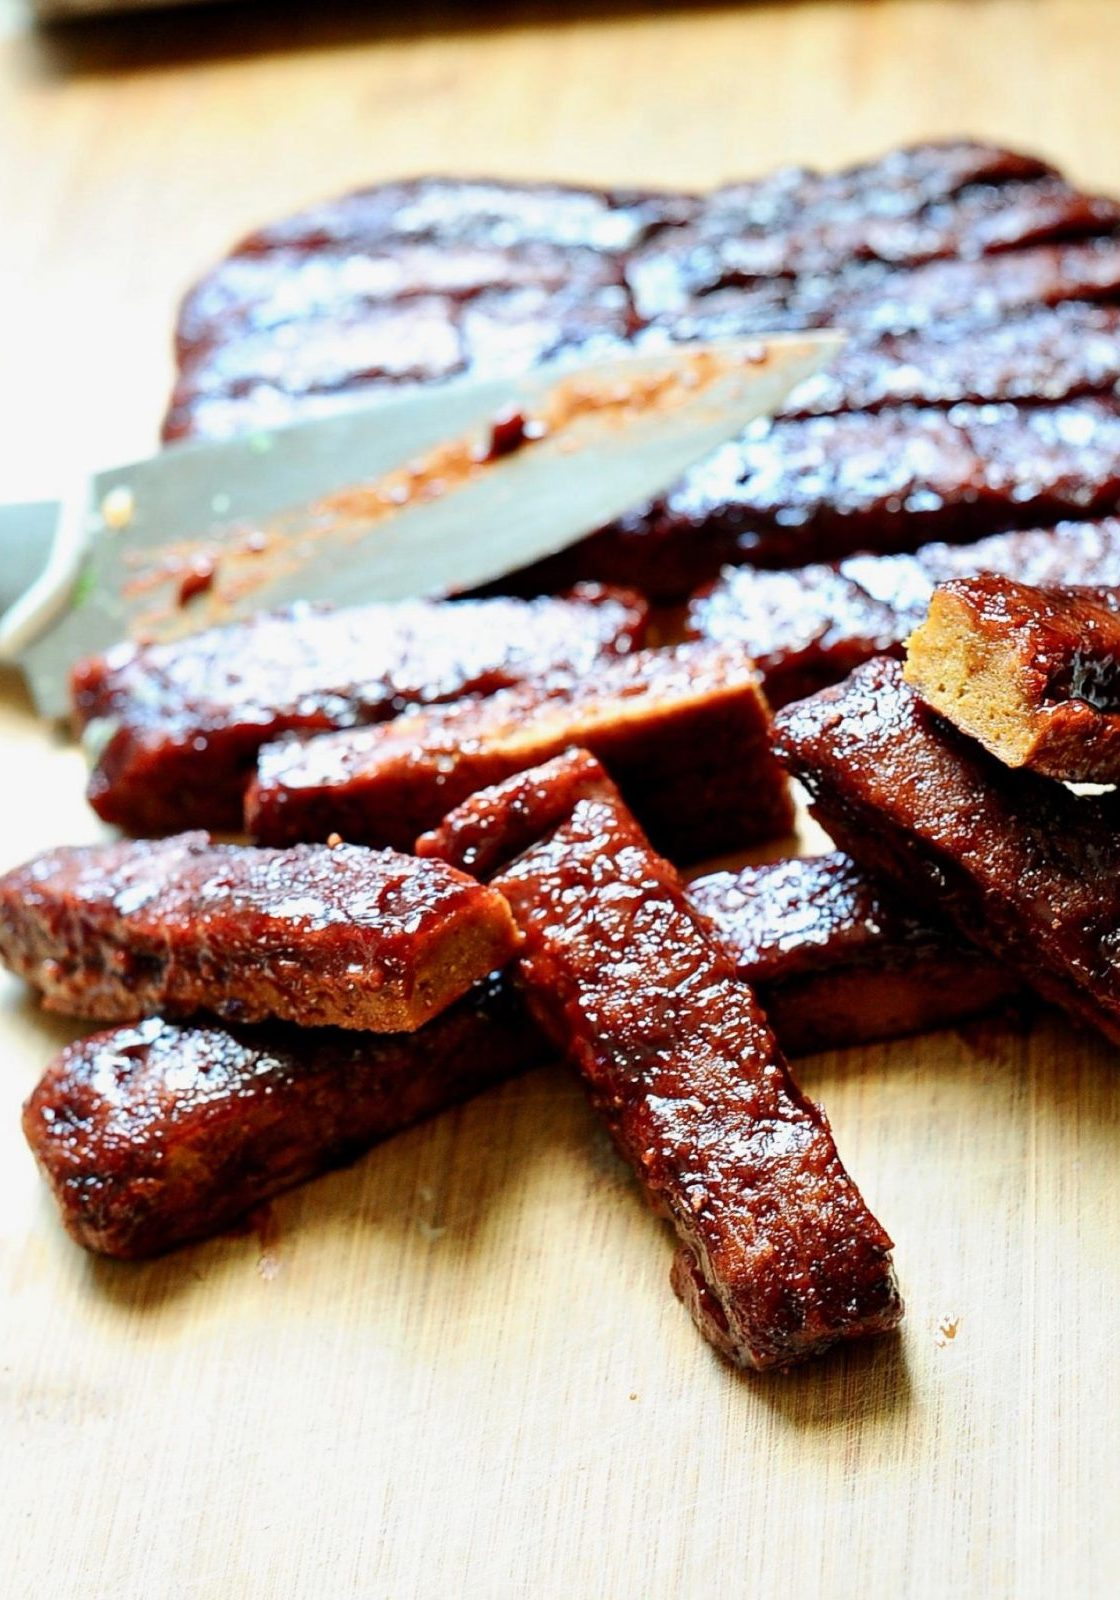 Bbq-Vegan-Ribs-with-Sticky-Tamarind-Bbq-Sauce-2